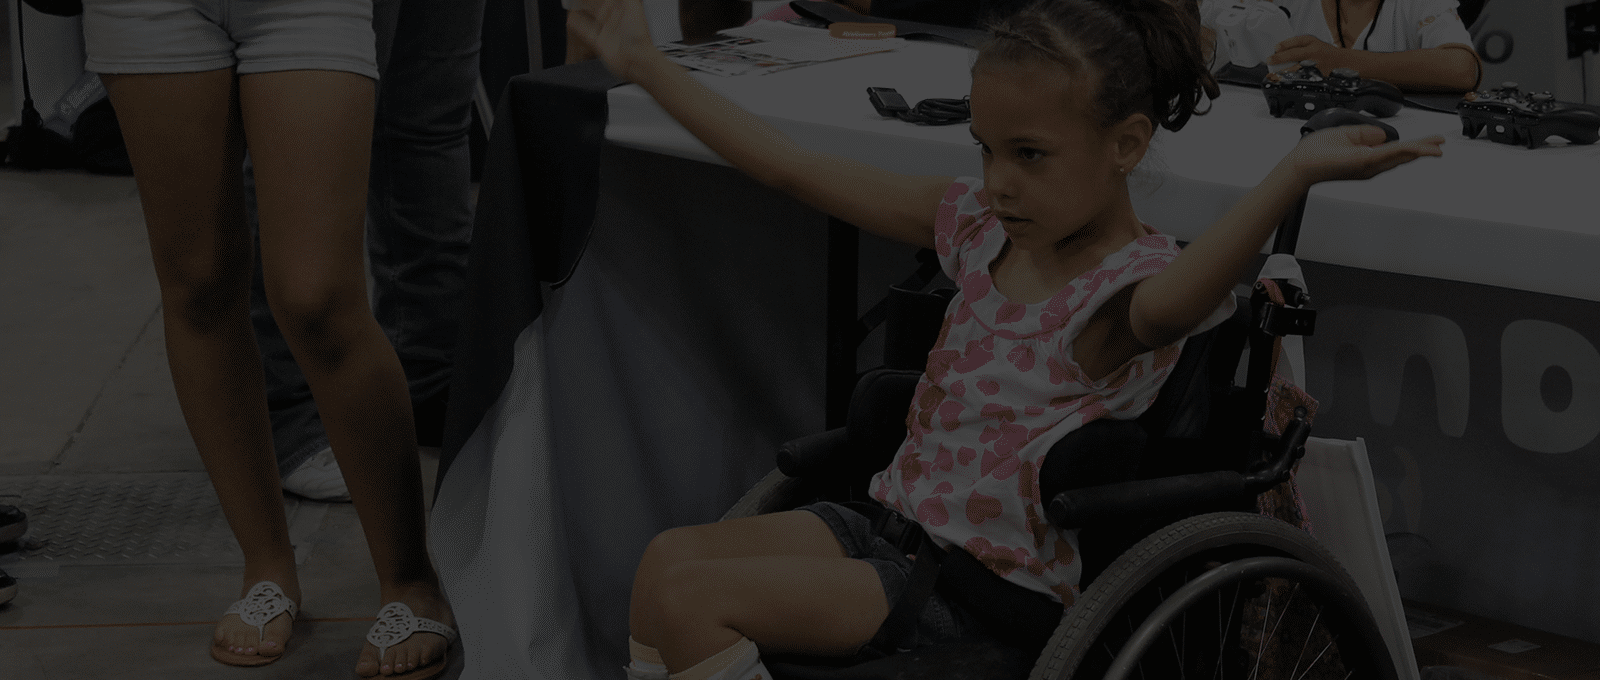 Photo of a little girl in a wheelchair playing Fruit Ninja